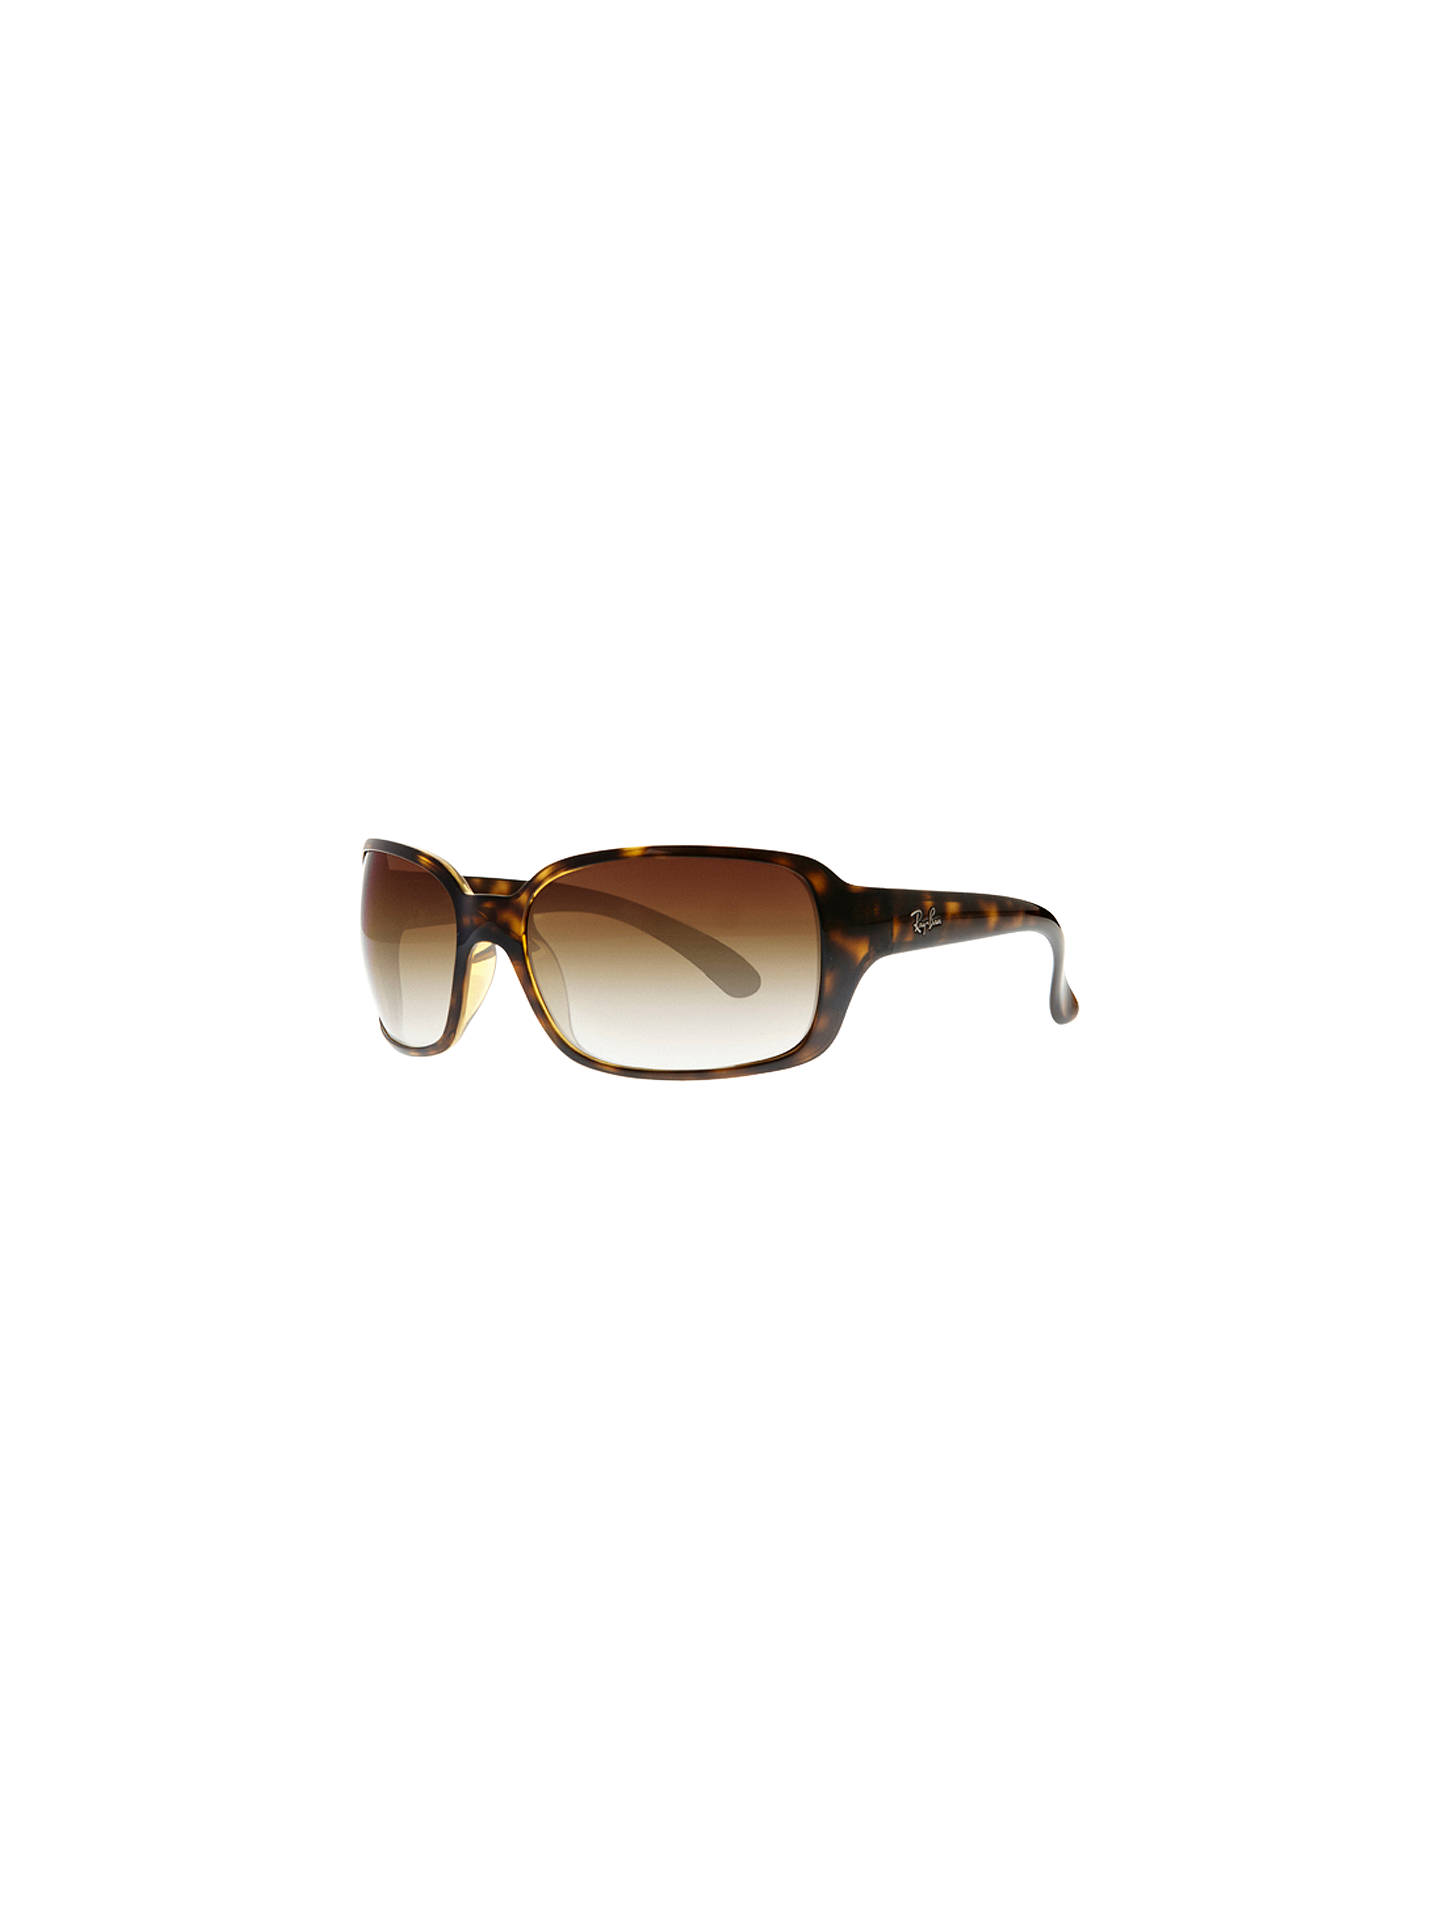 3c188b2f02305 Ray-Ban RB4068 Highstreet Square Sunglasses at John Lewis   Partners